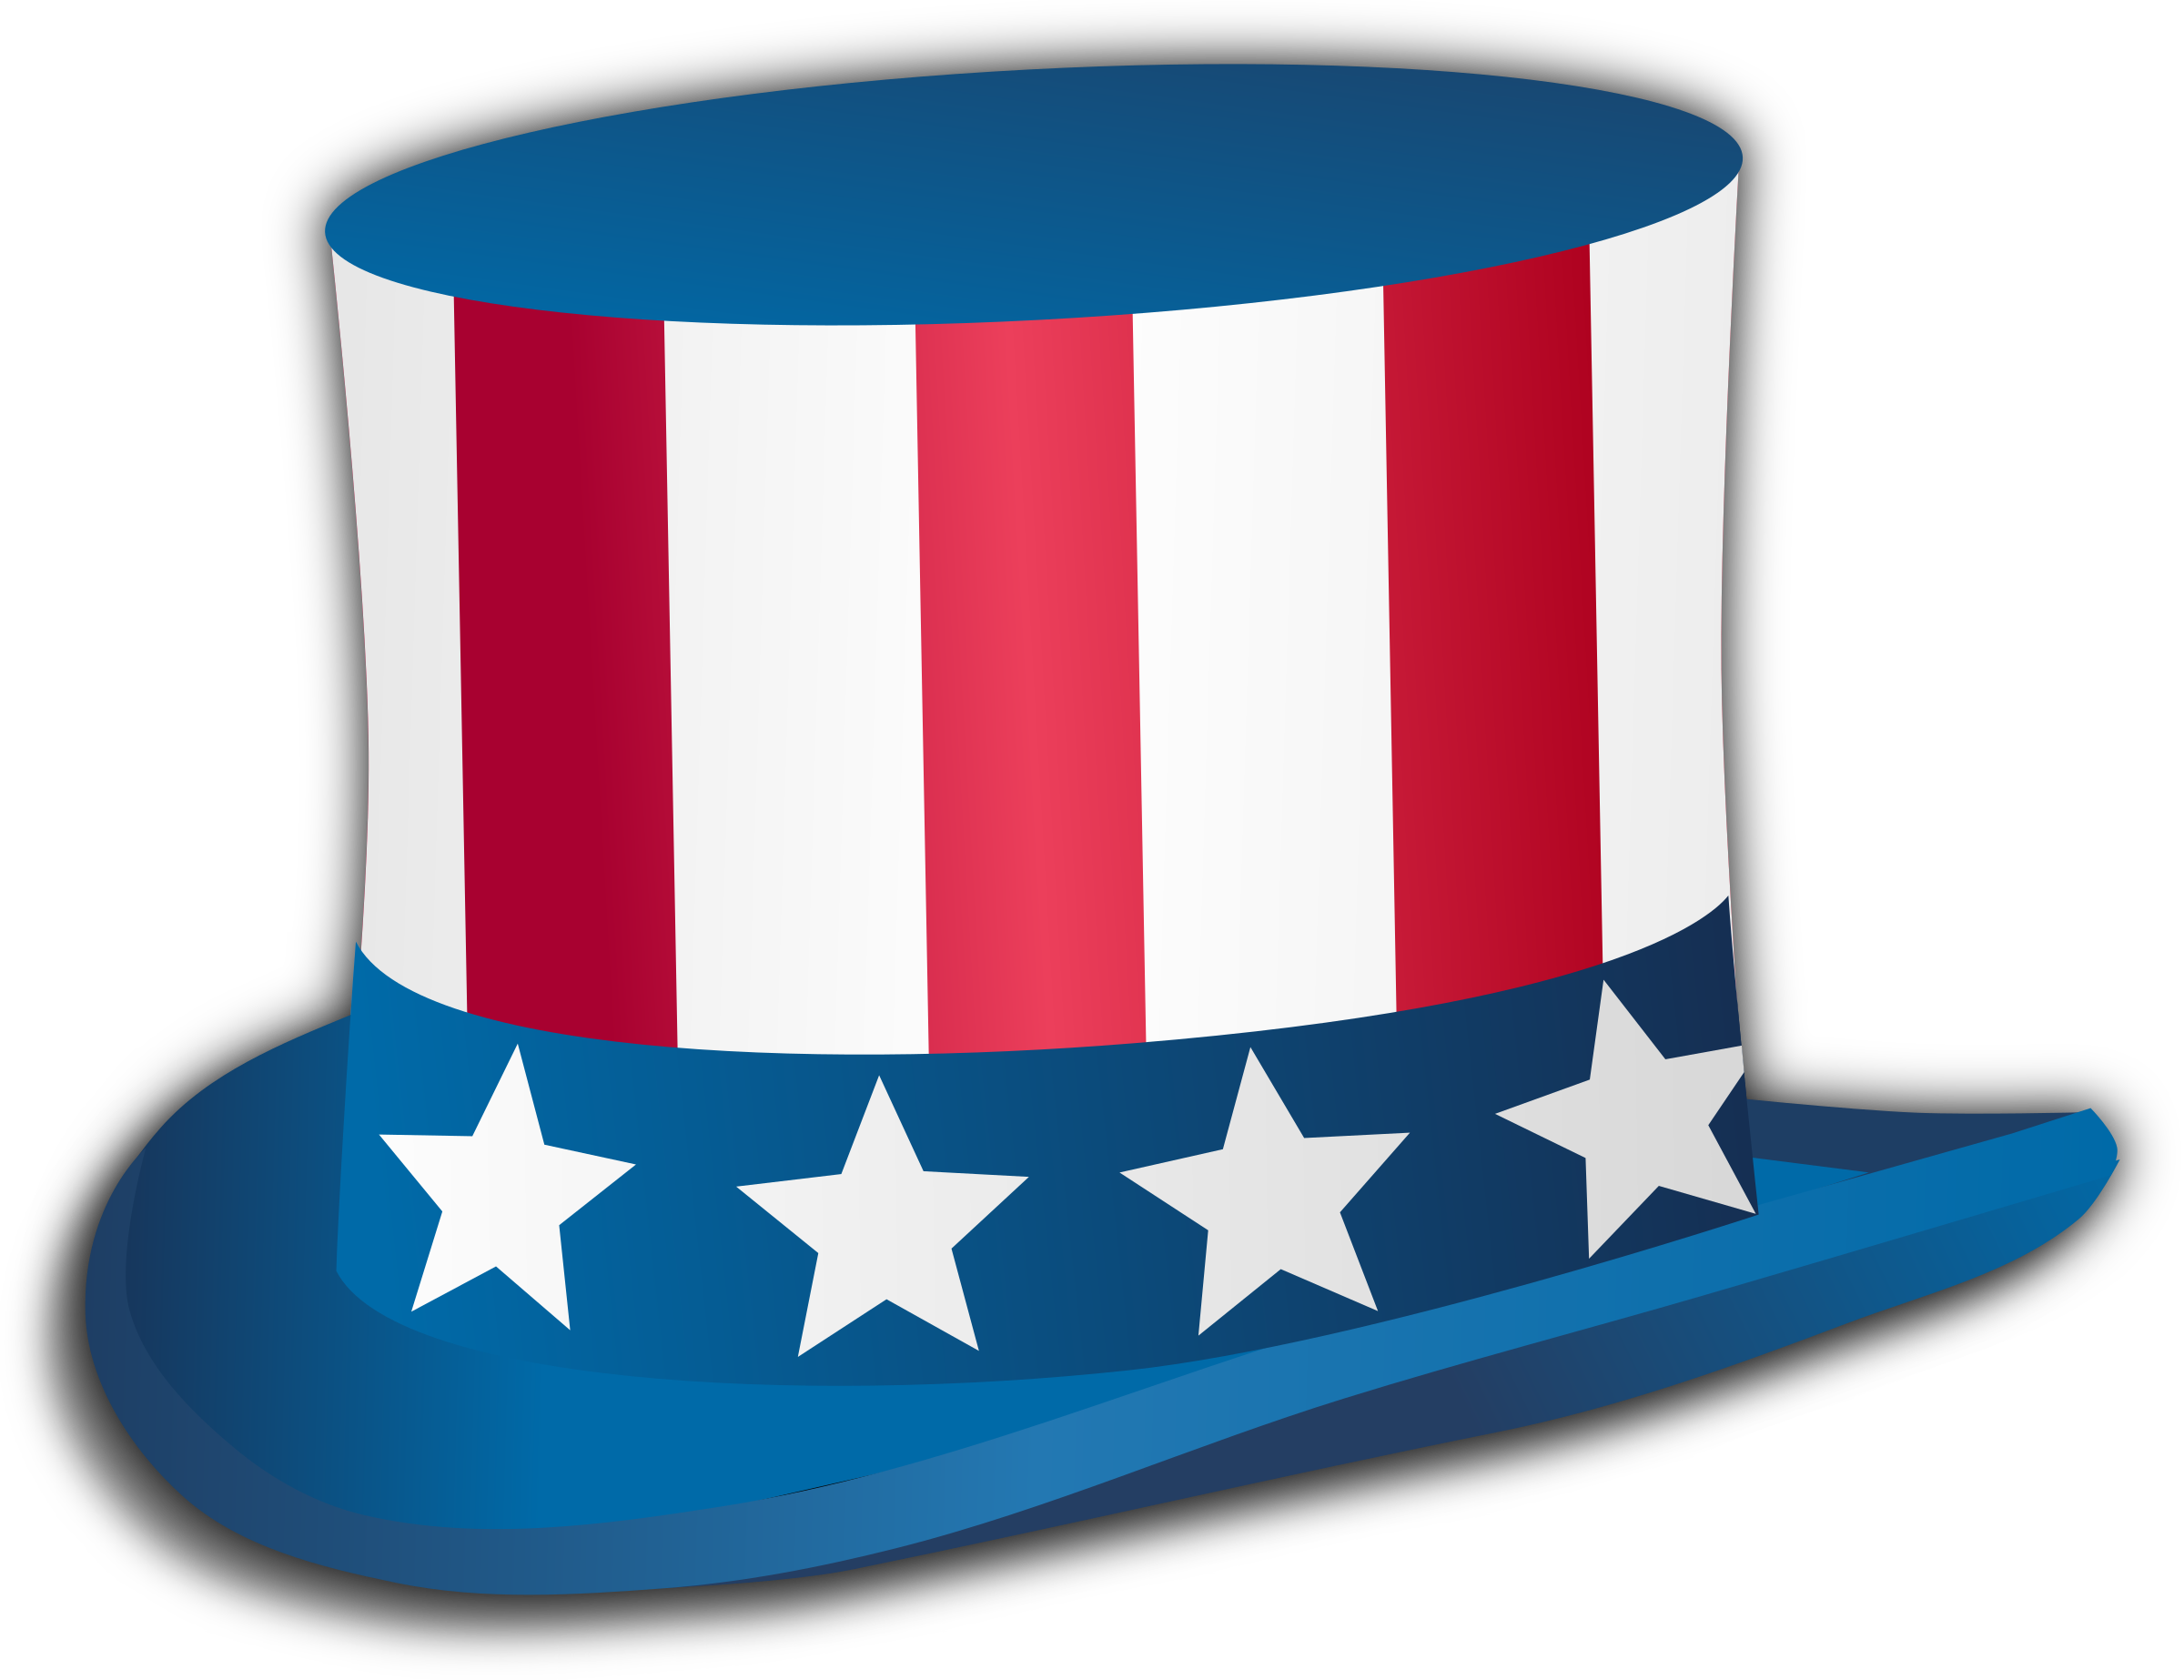 Hats clipart 4th july. Th hat big image